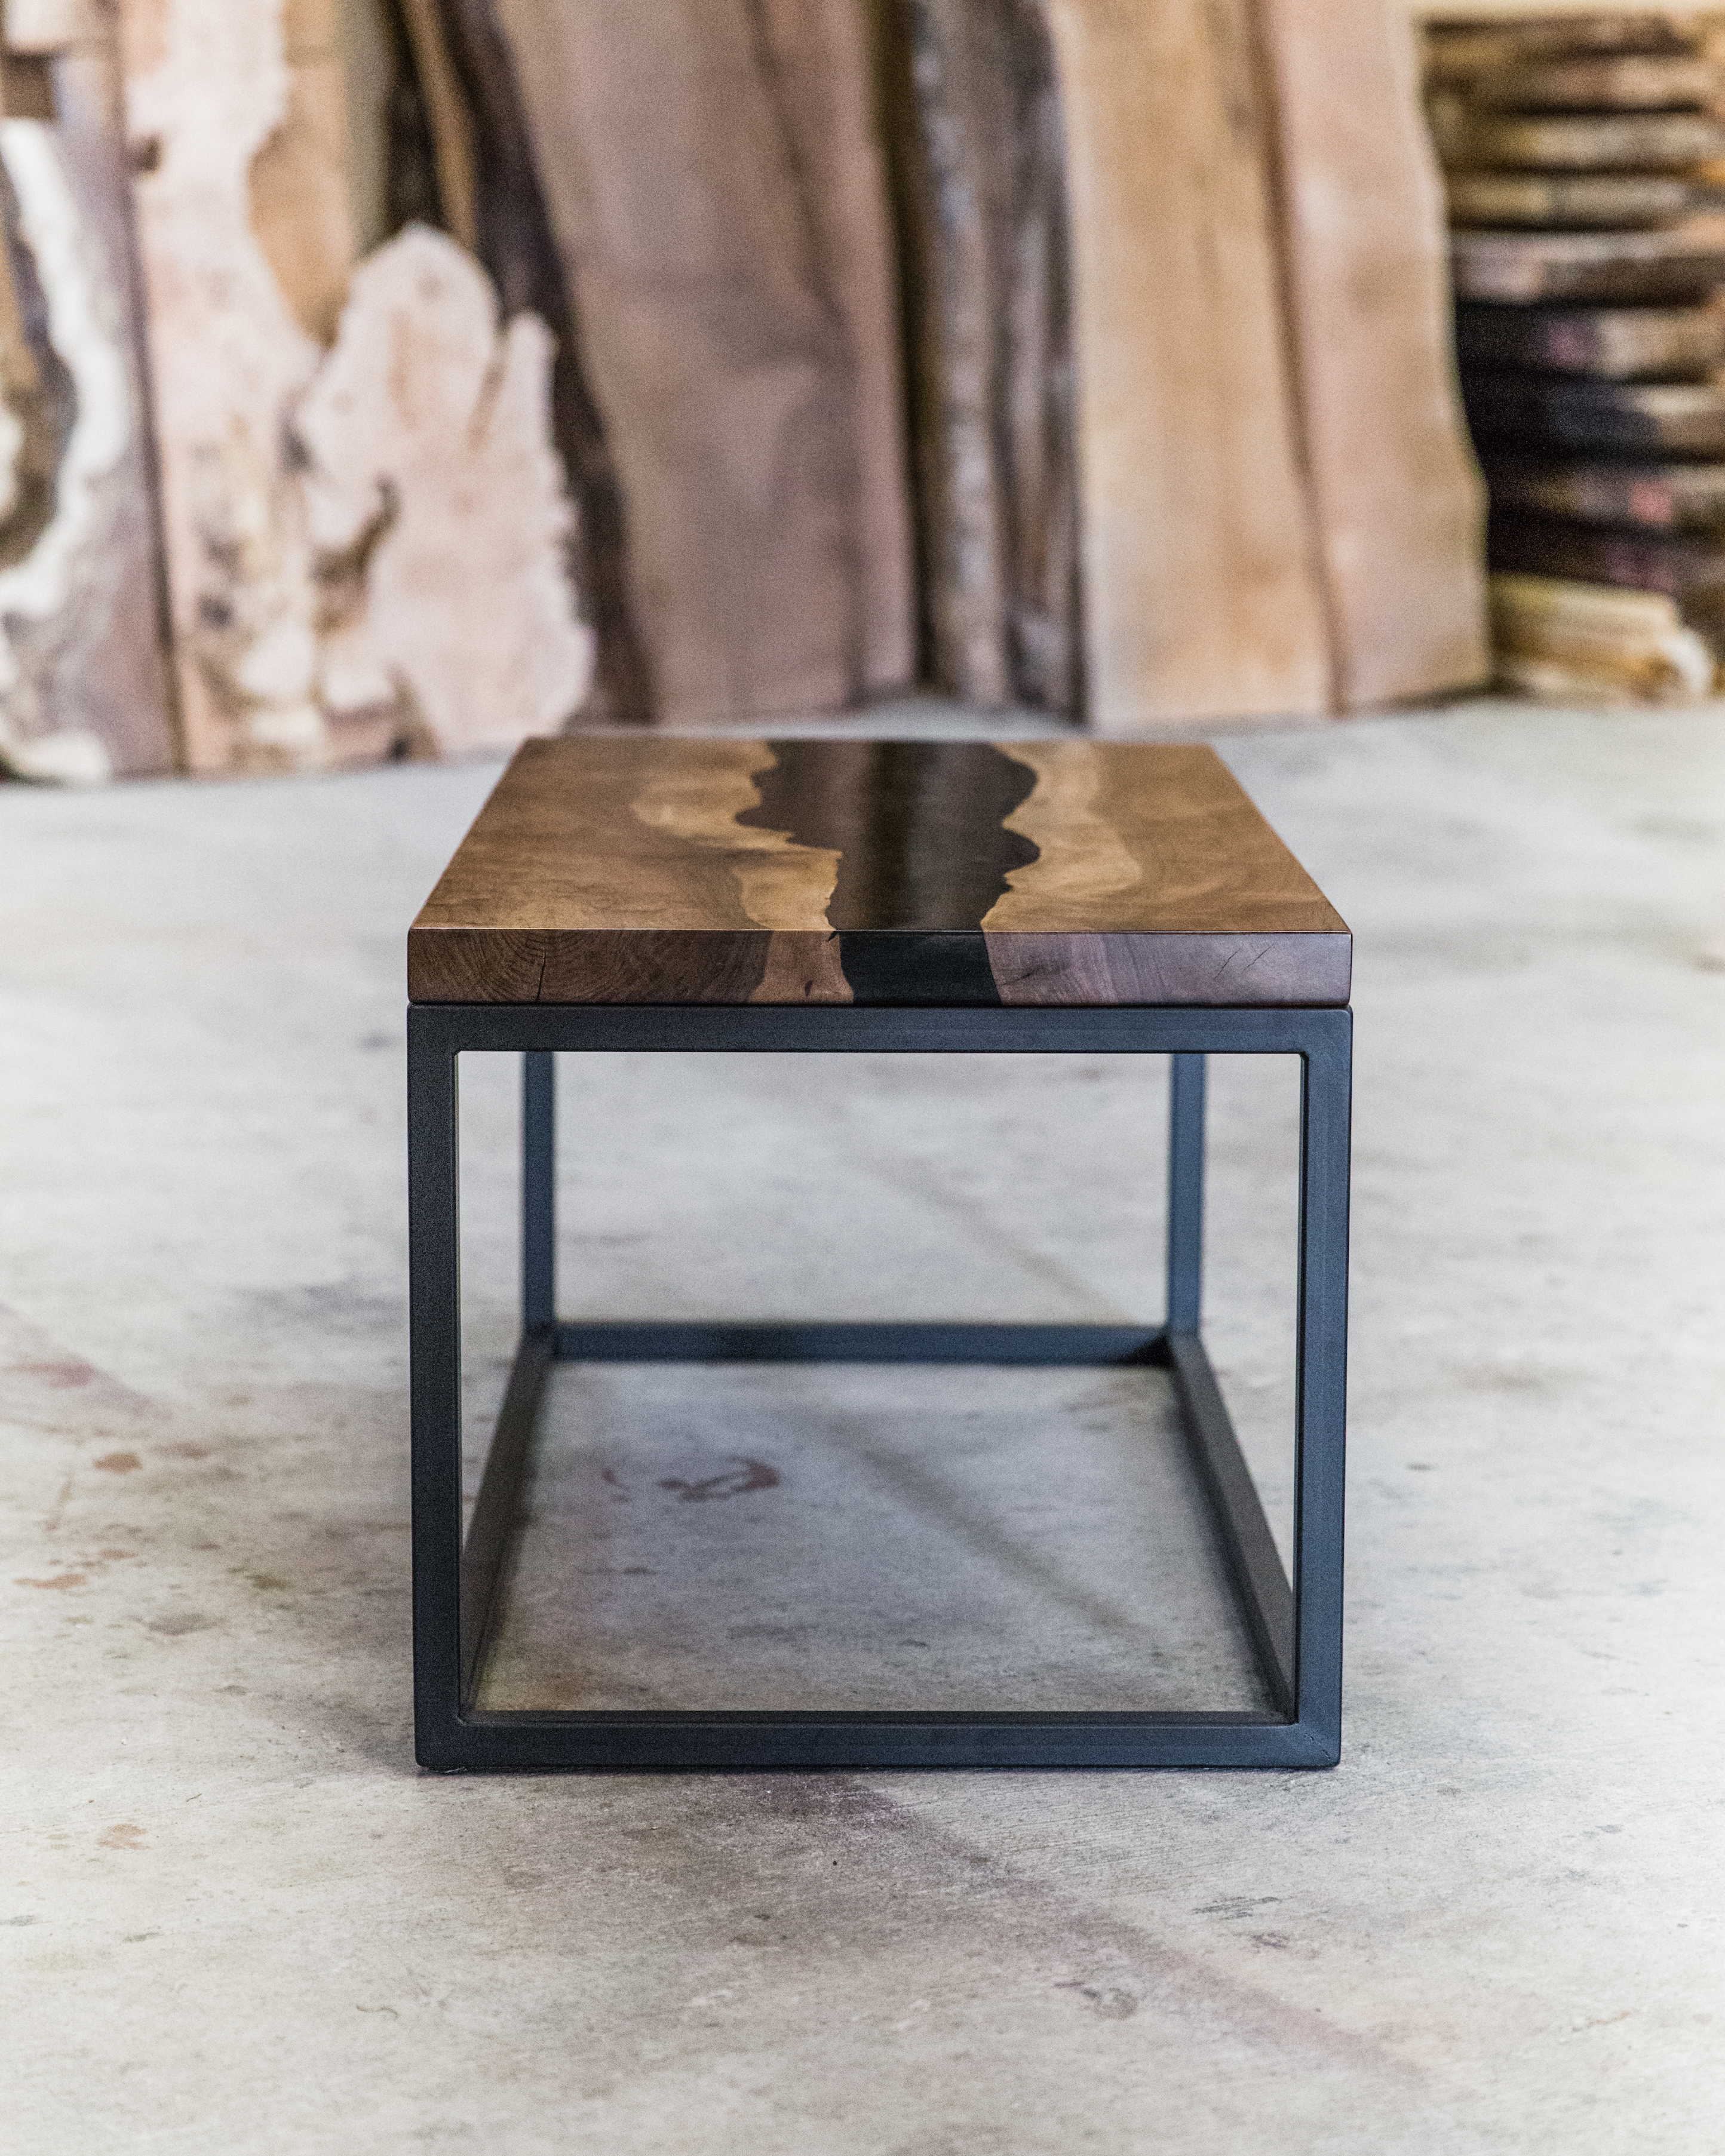 BW Resin Table 9.jpg